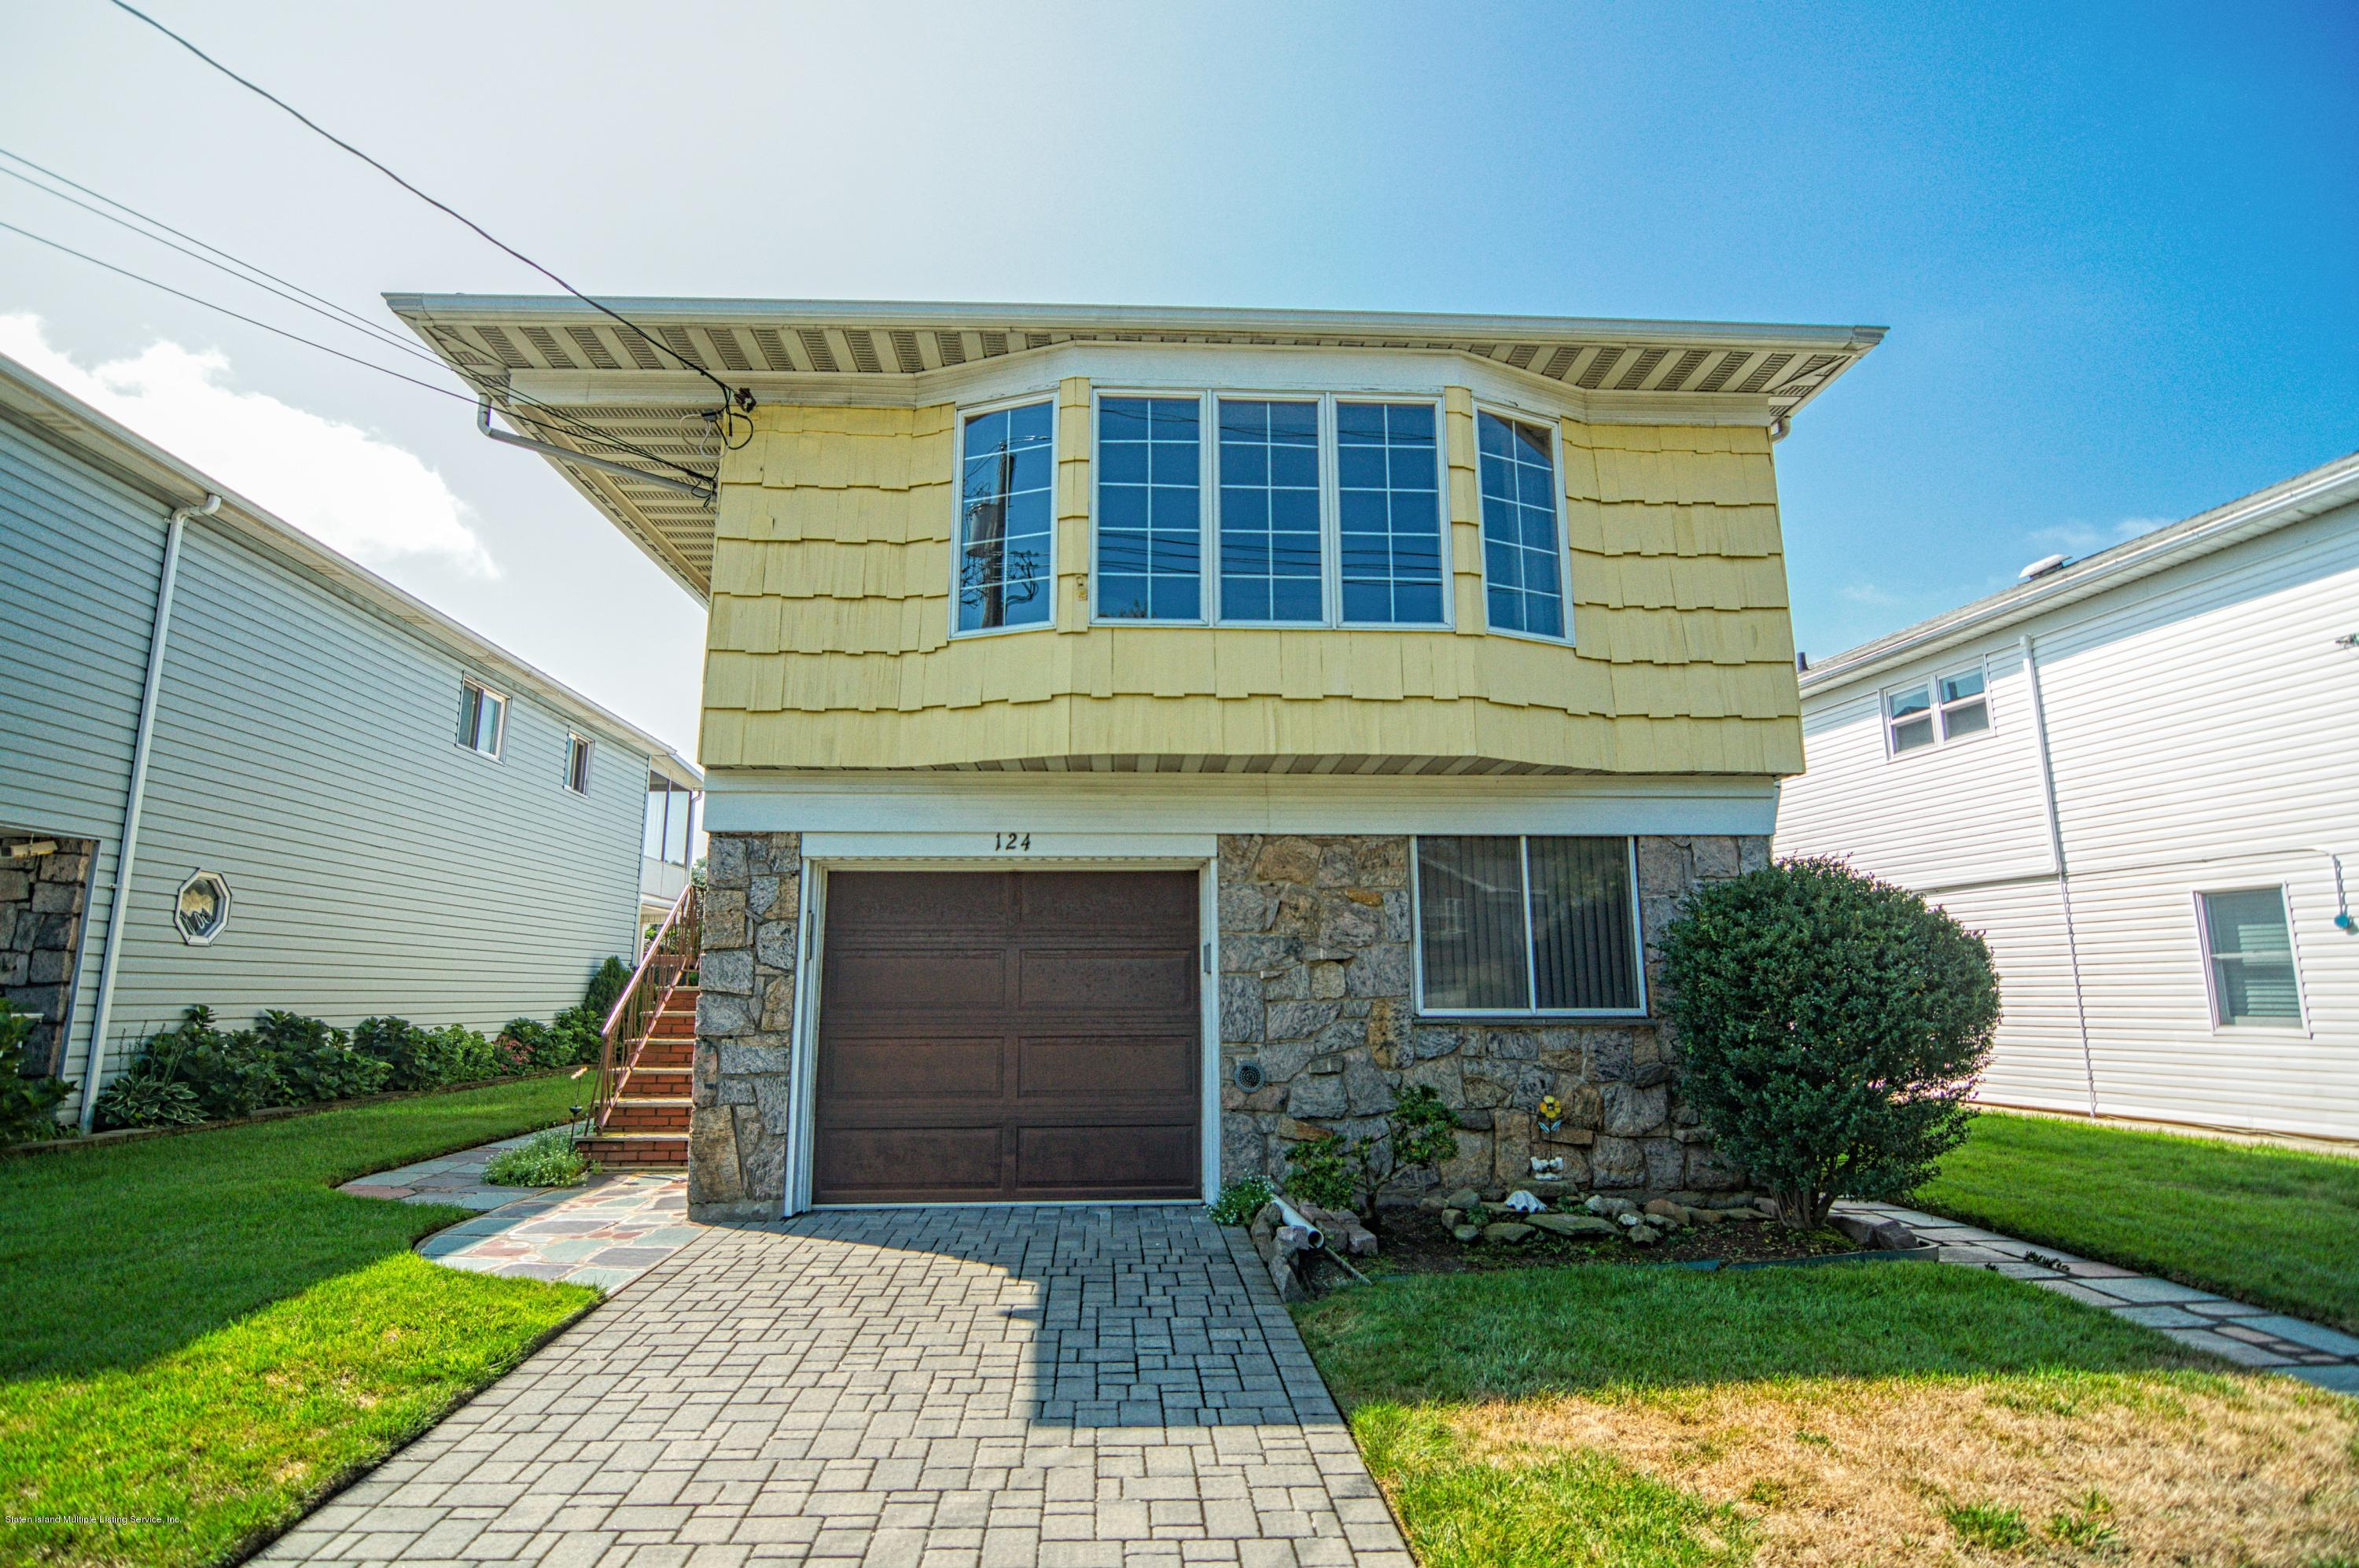 Single Family - Detached 124 Queen Street  Staten Island, NY 10314, MLS-1131413-20